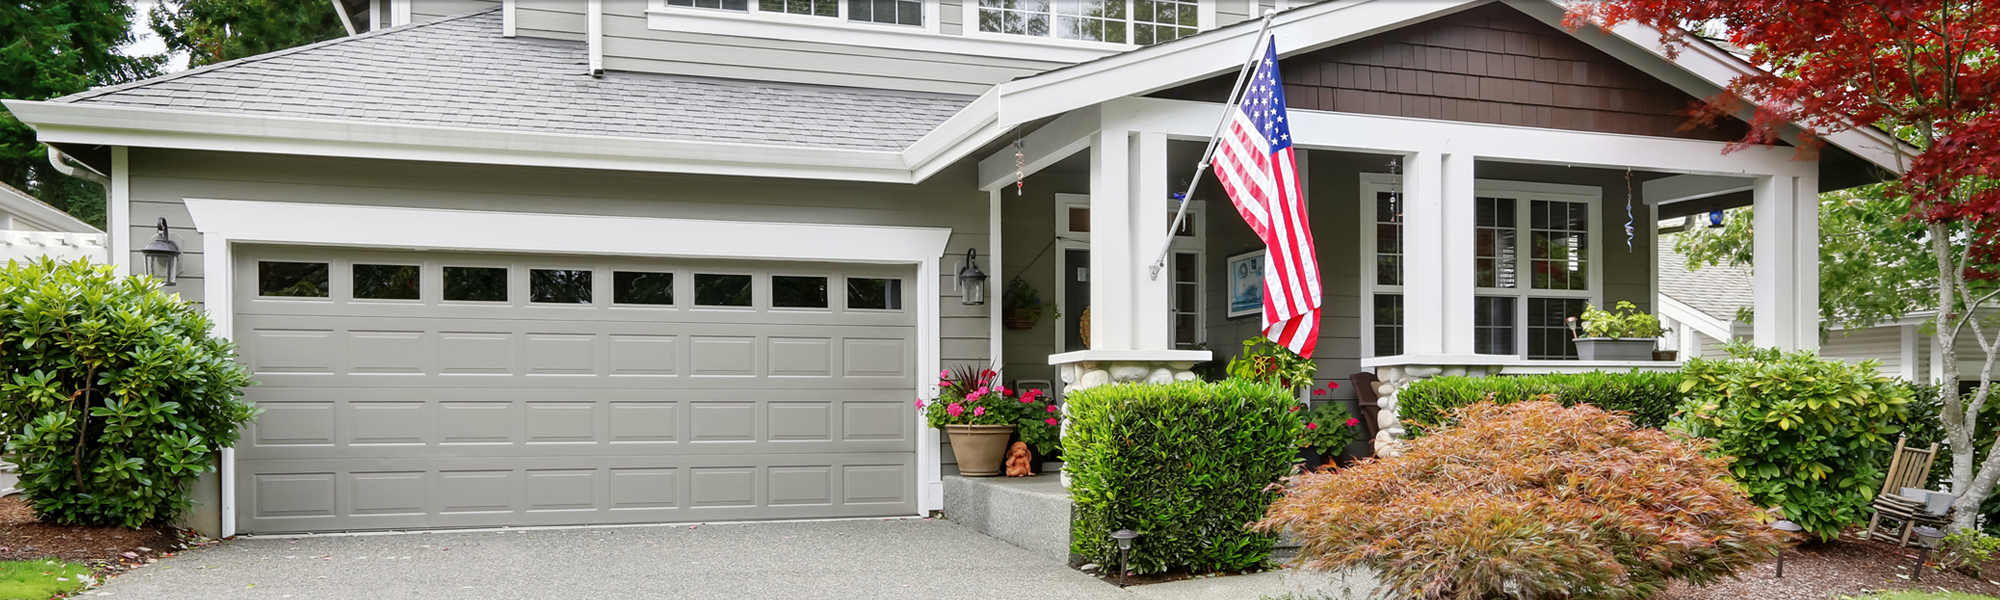 Residential Garage Doors - Summerville, SC